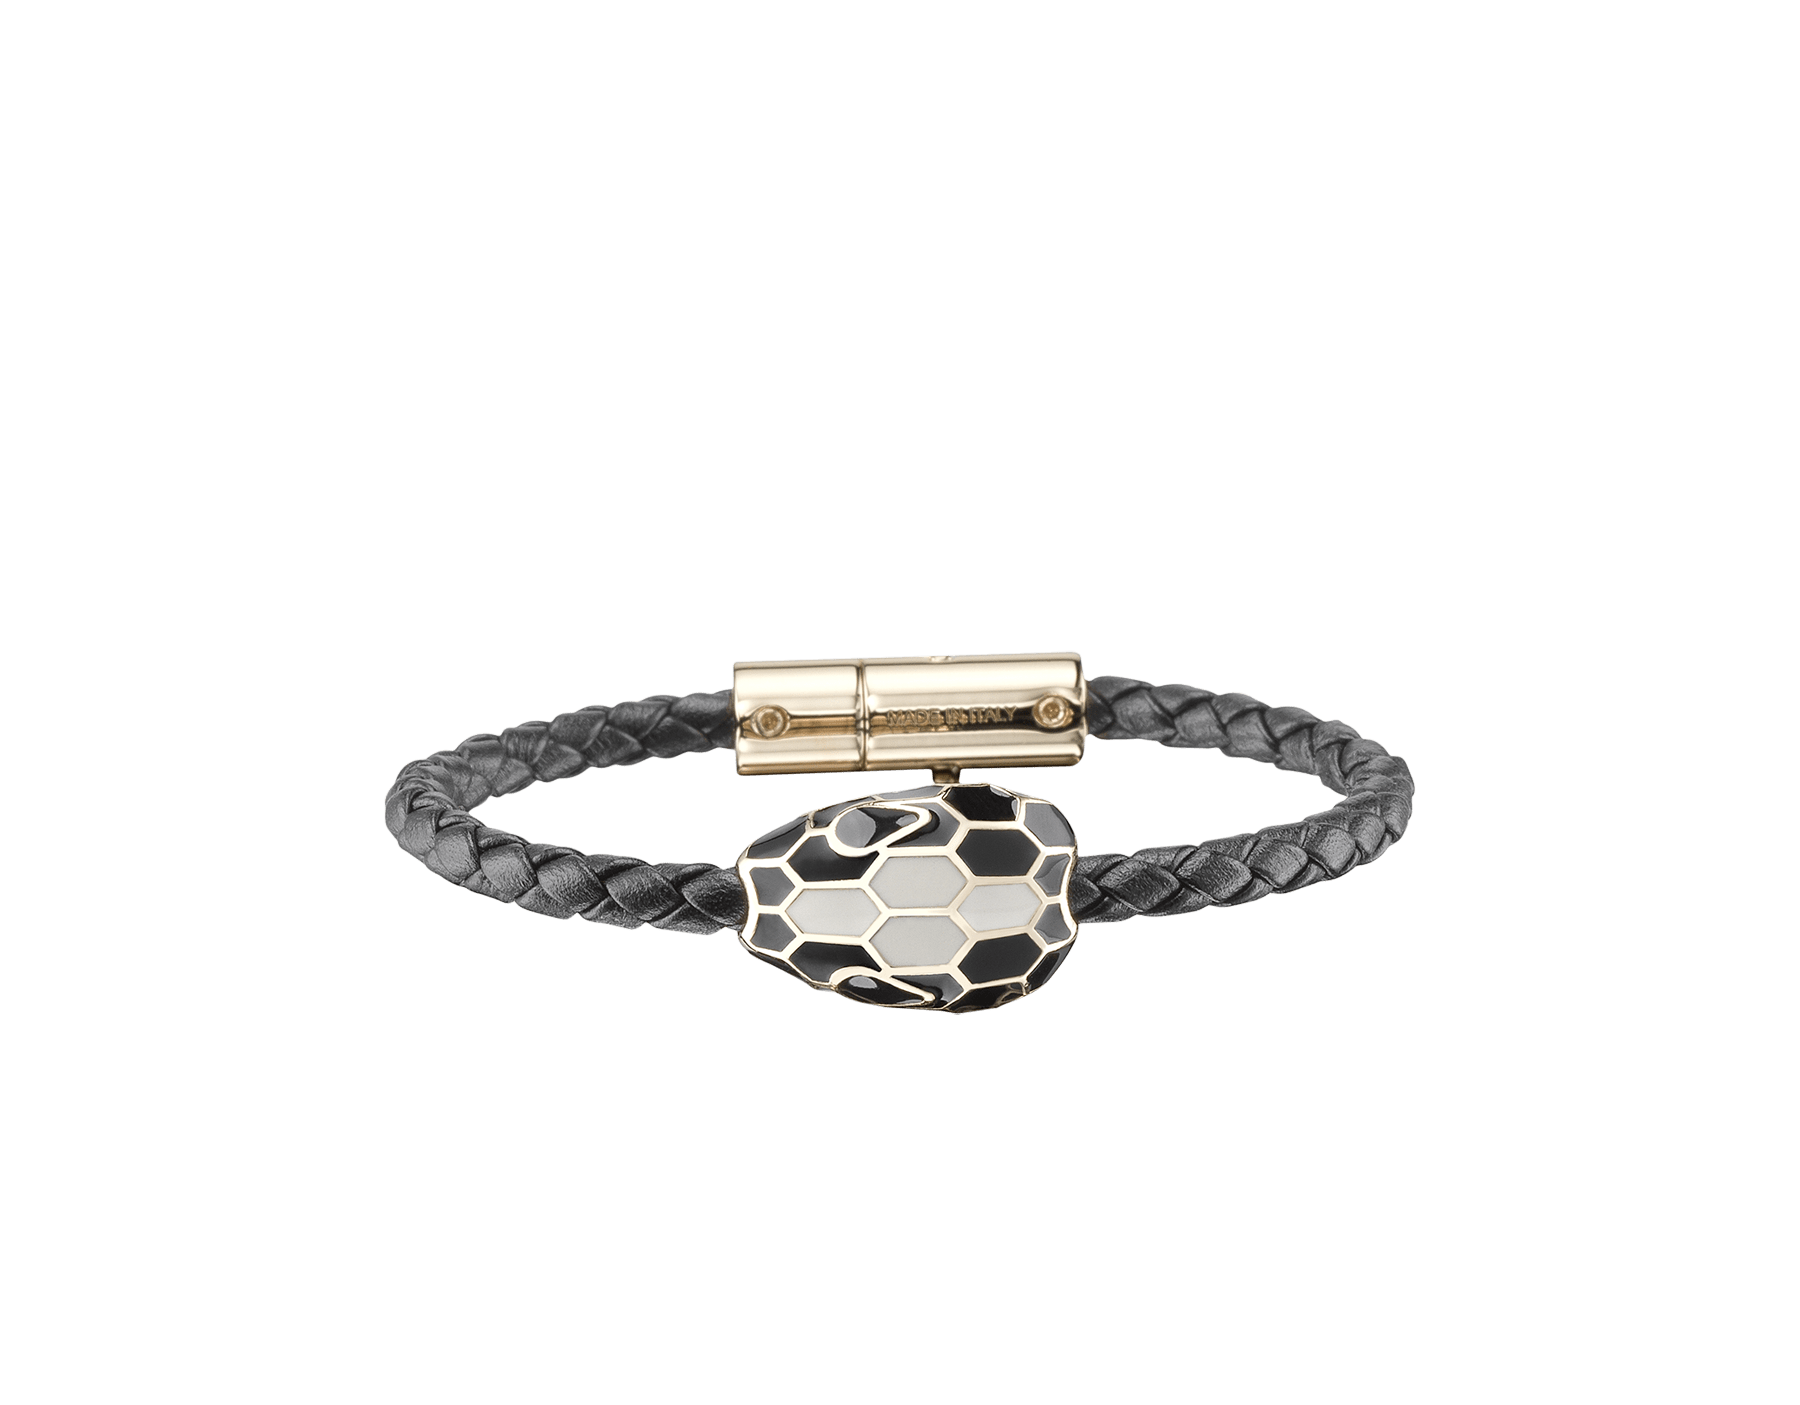 Serpenti Forever braid bracelet in black woven calf leather with an iconic snakehead decoration in black and white enamel. SerpBraid-WCL-B image 1